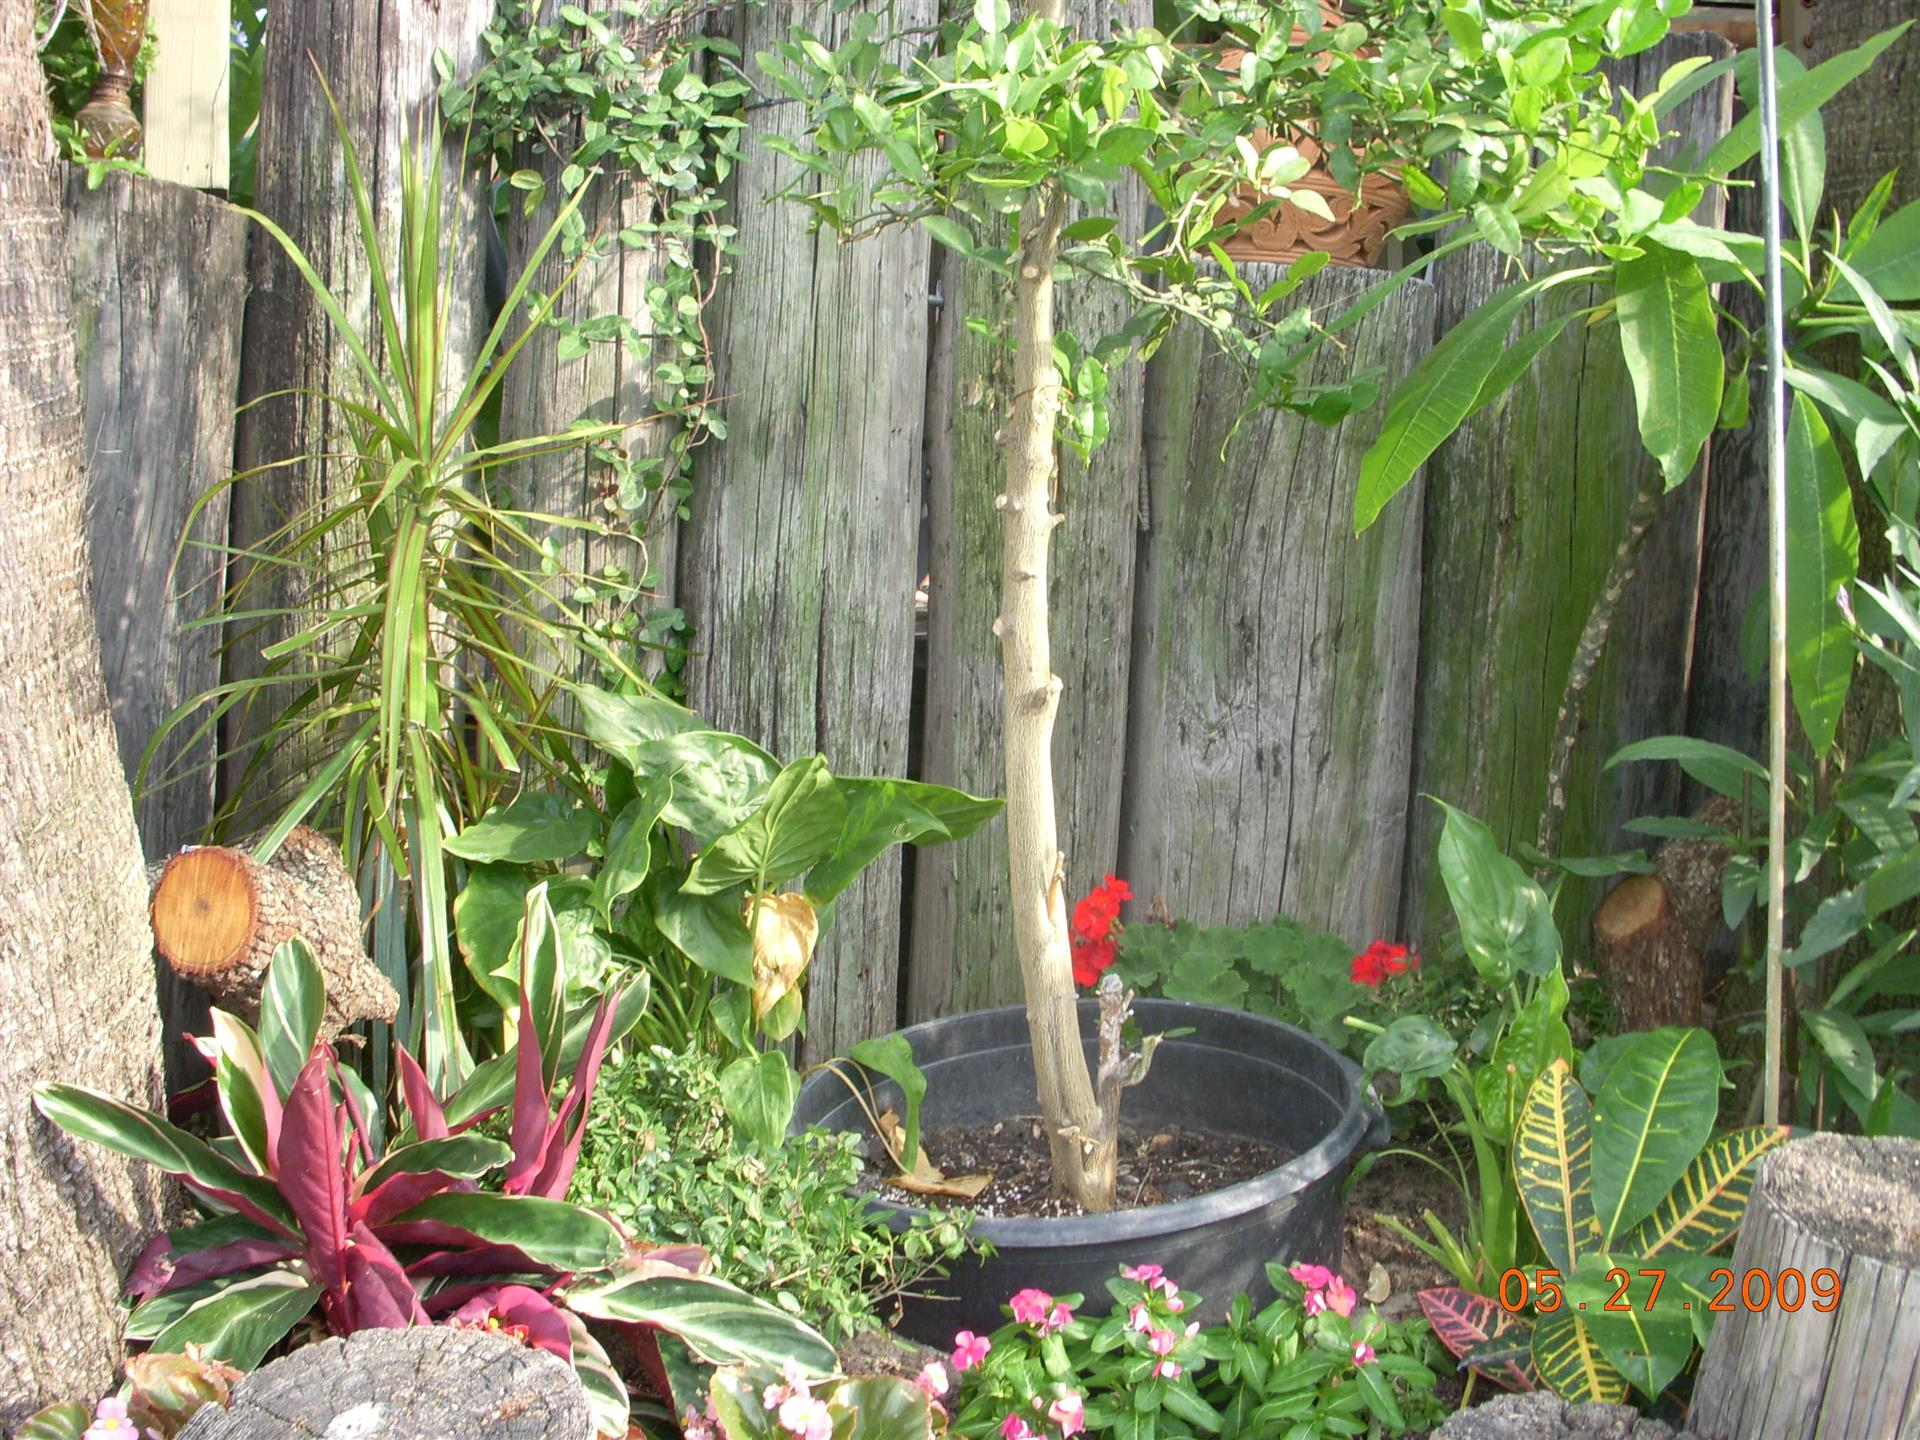 Colorful garden with tall plants next to a variety of pink and red flowers